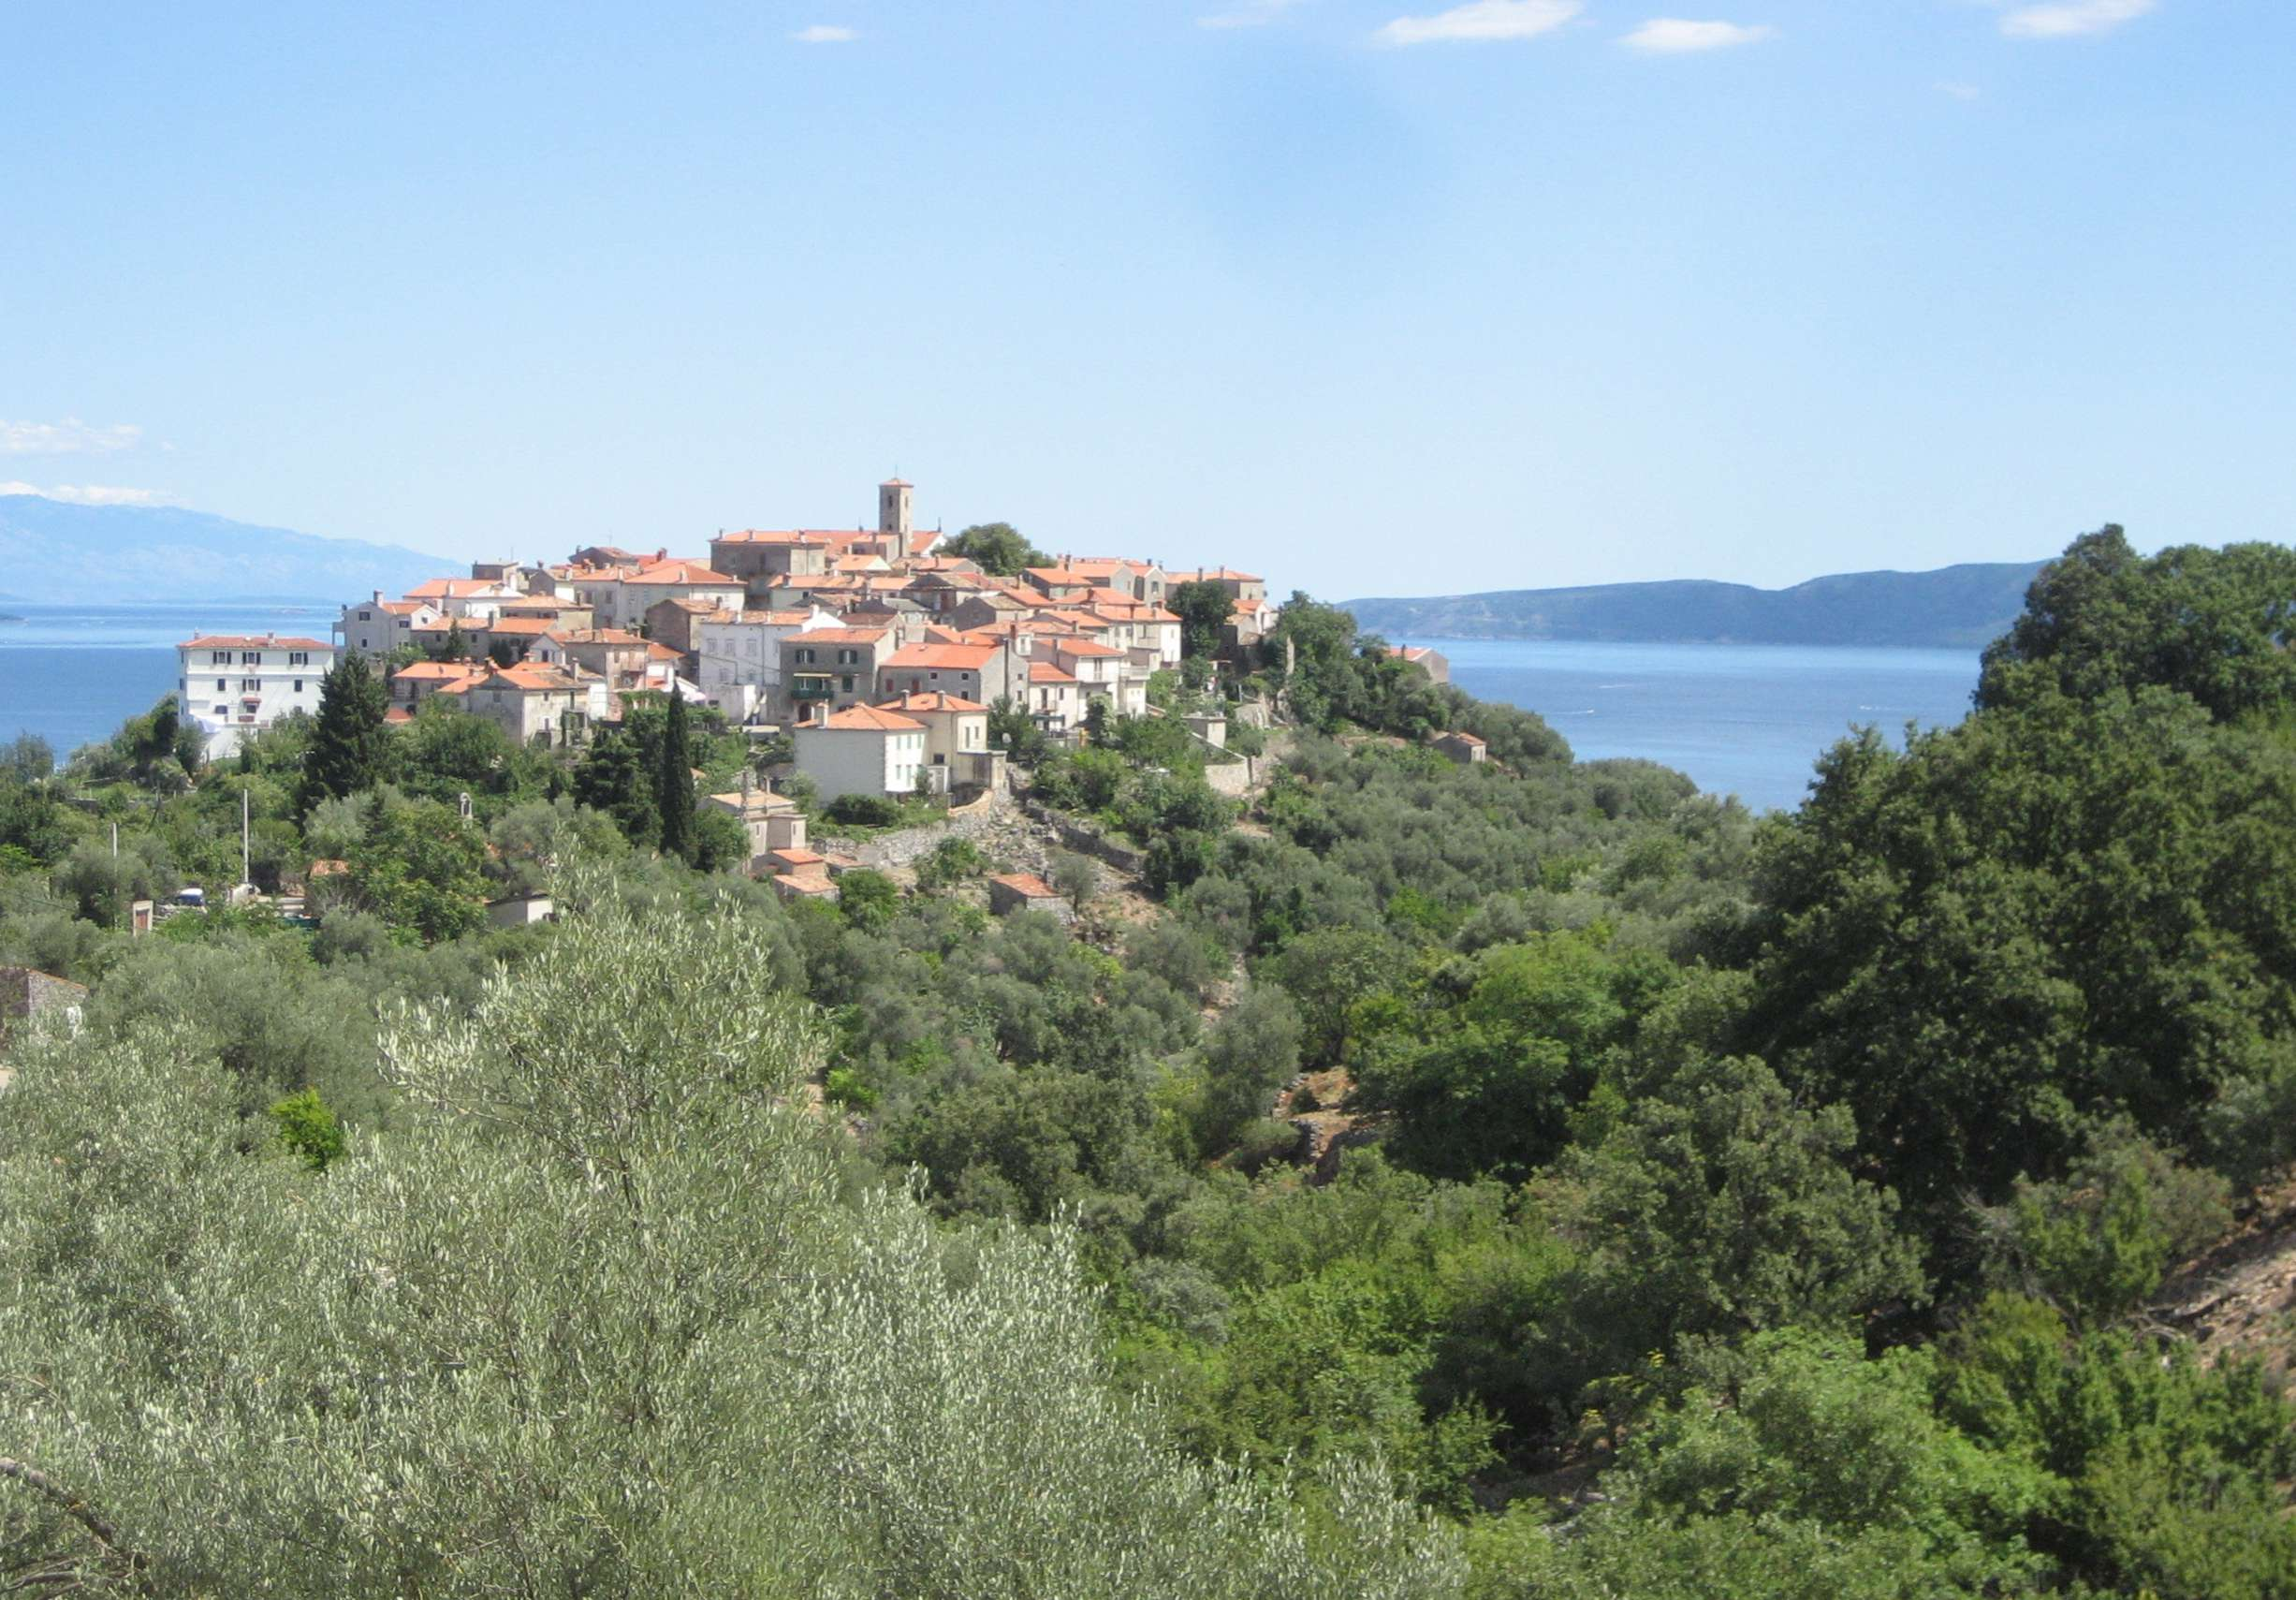 File:Beli, Cres, Croatia.JPG - Wikipedia, the free encyclopedia